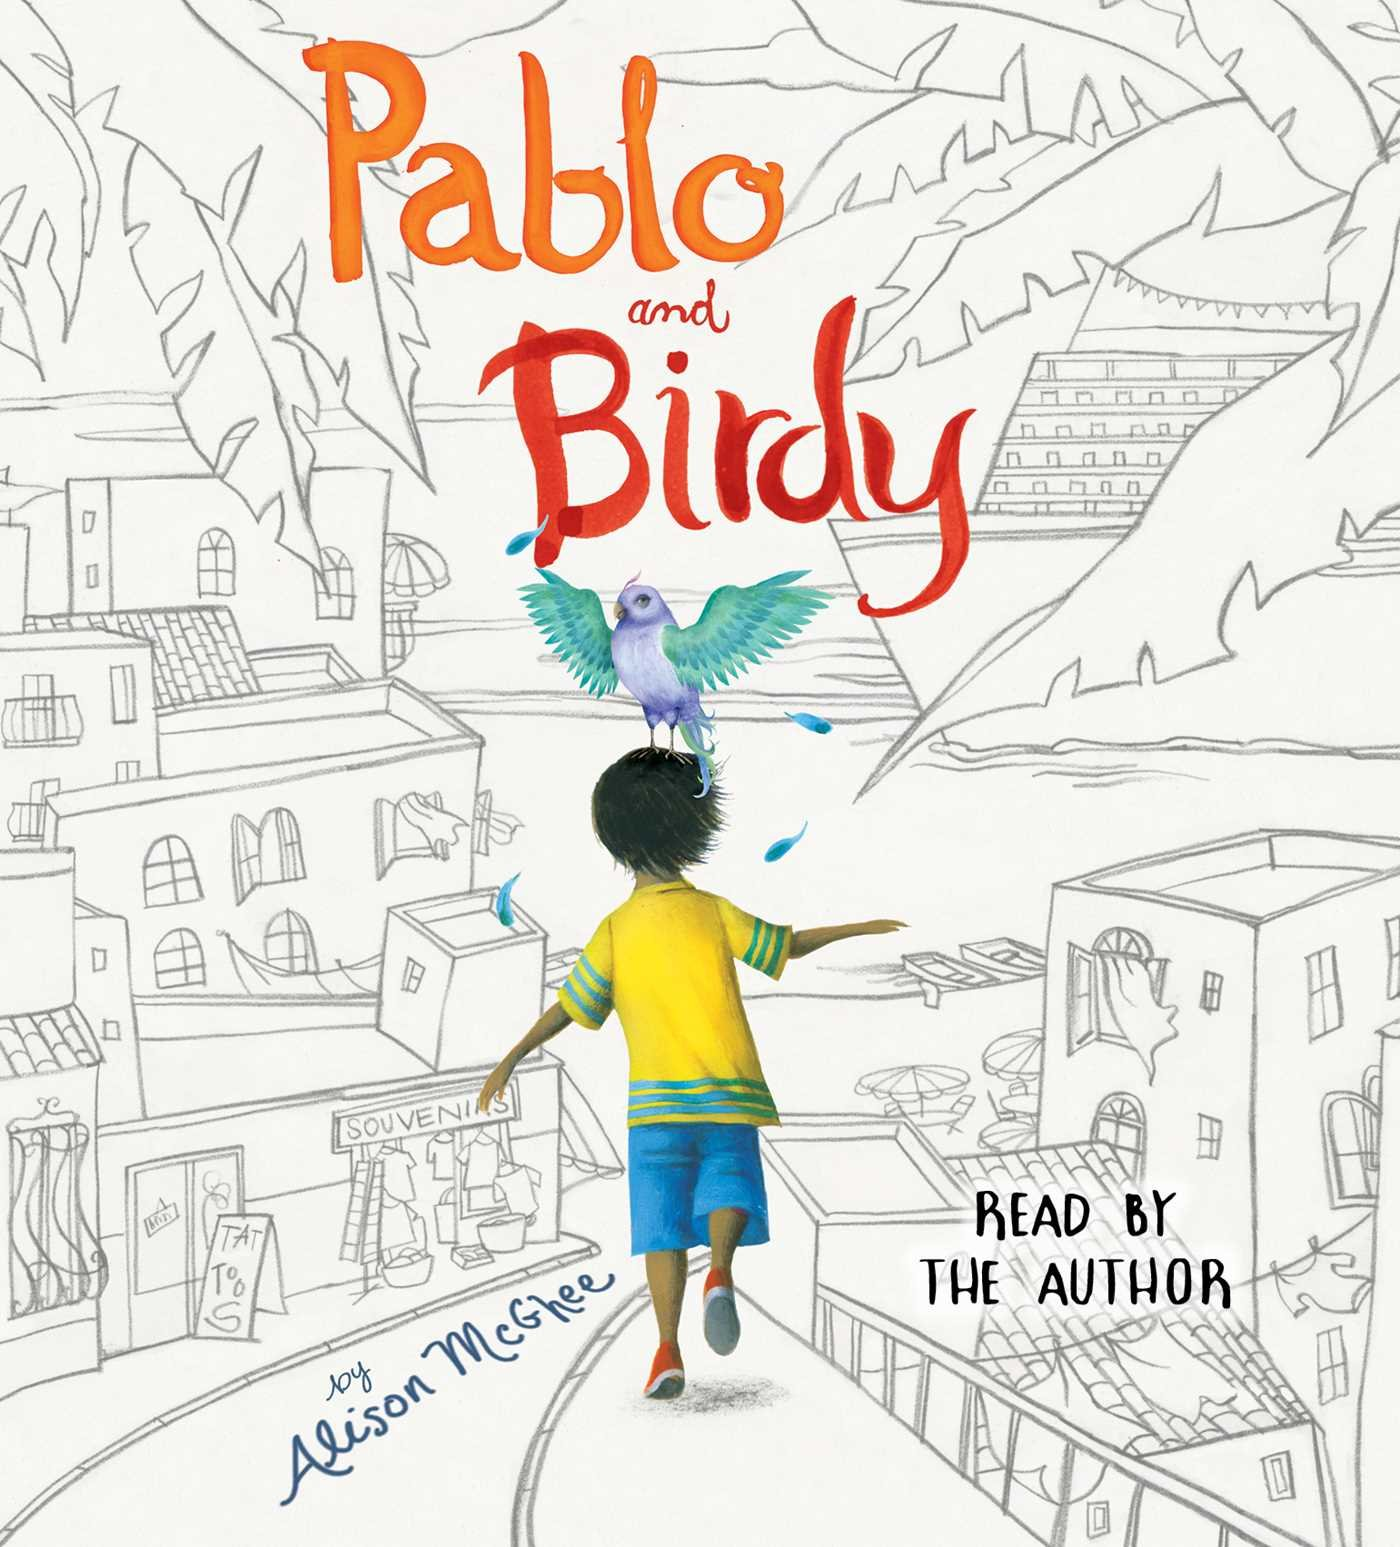 Pablo and Birdy